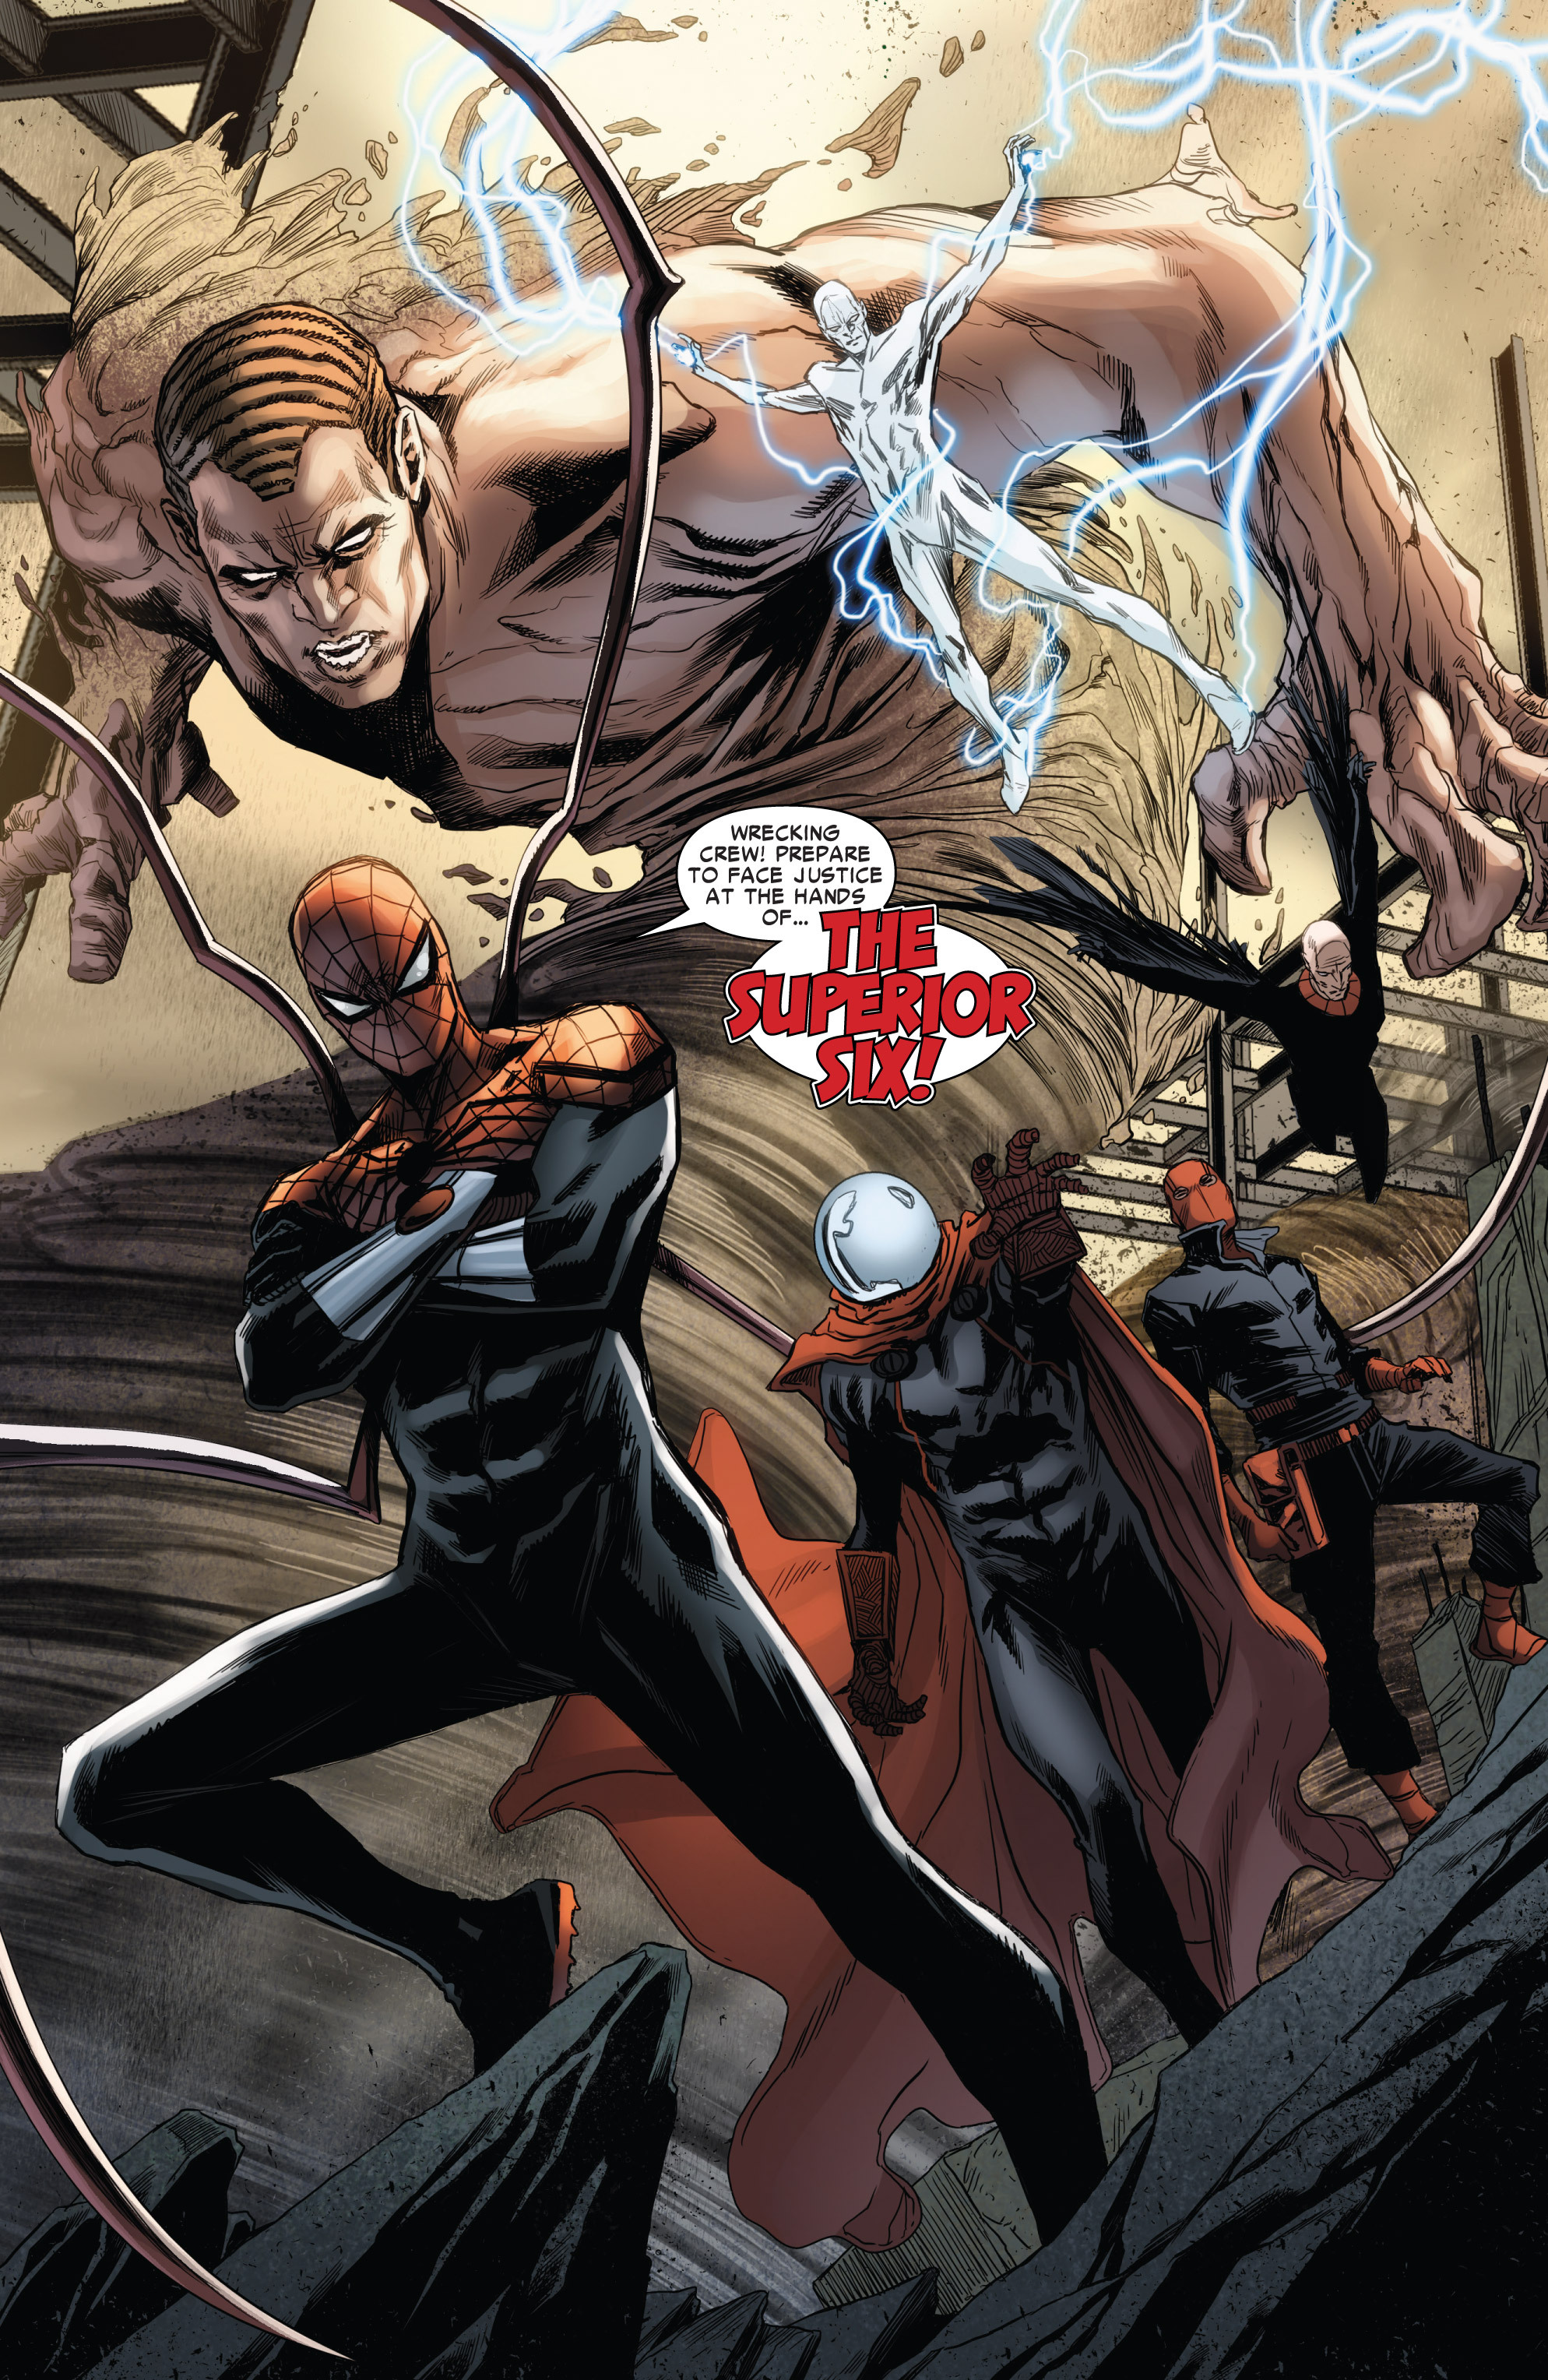 Superior Six (Earth-616) from Superior Spider-Man Team-Up Vol 1 5 001.jpg